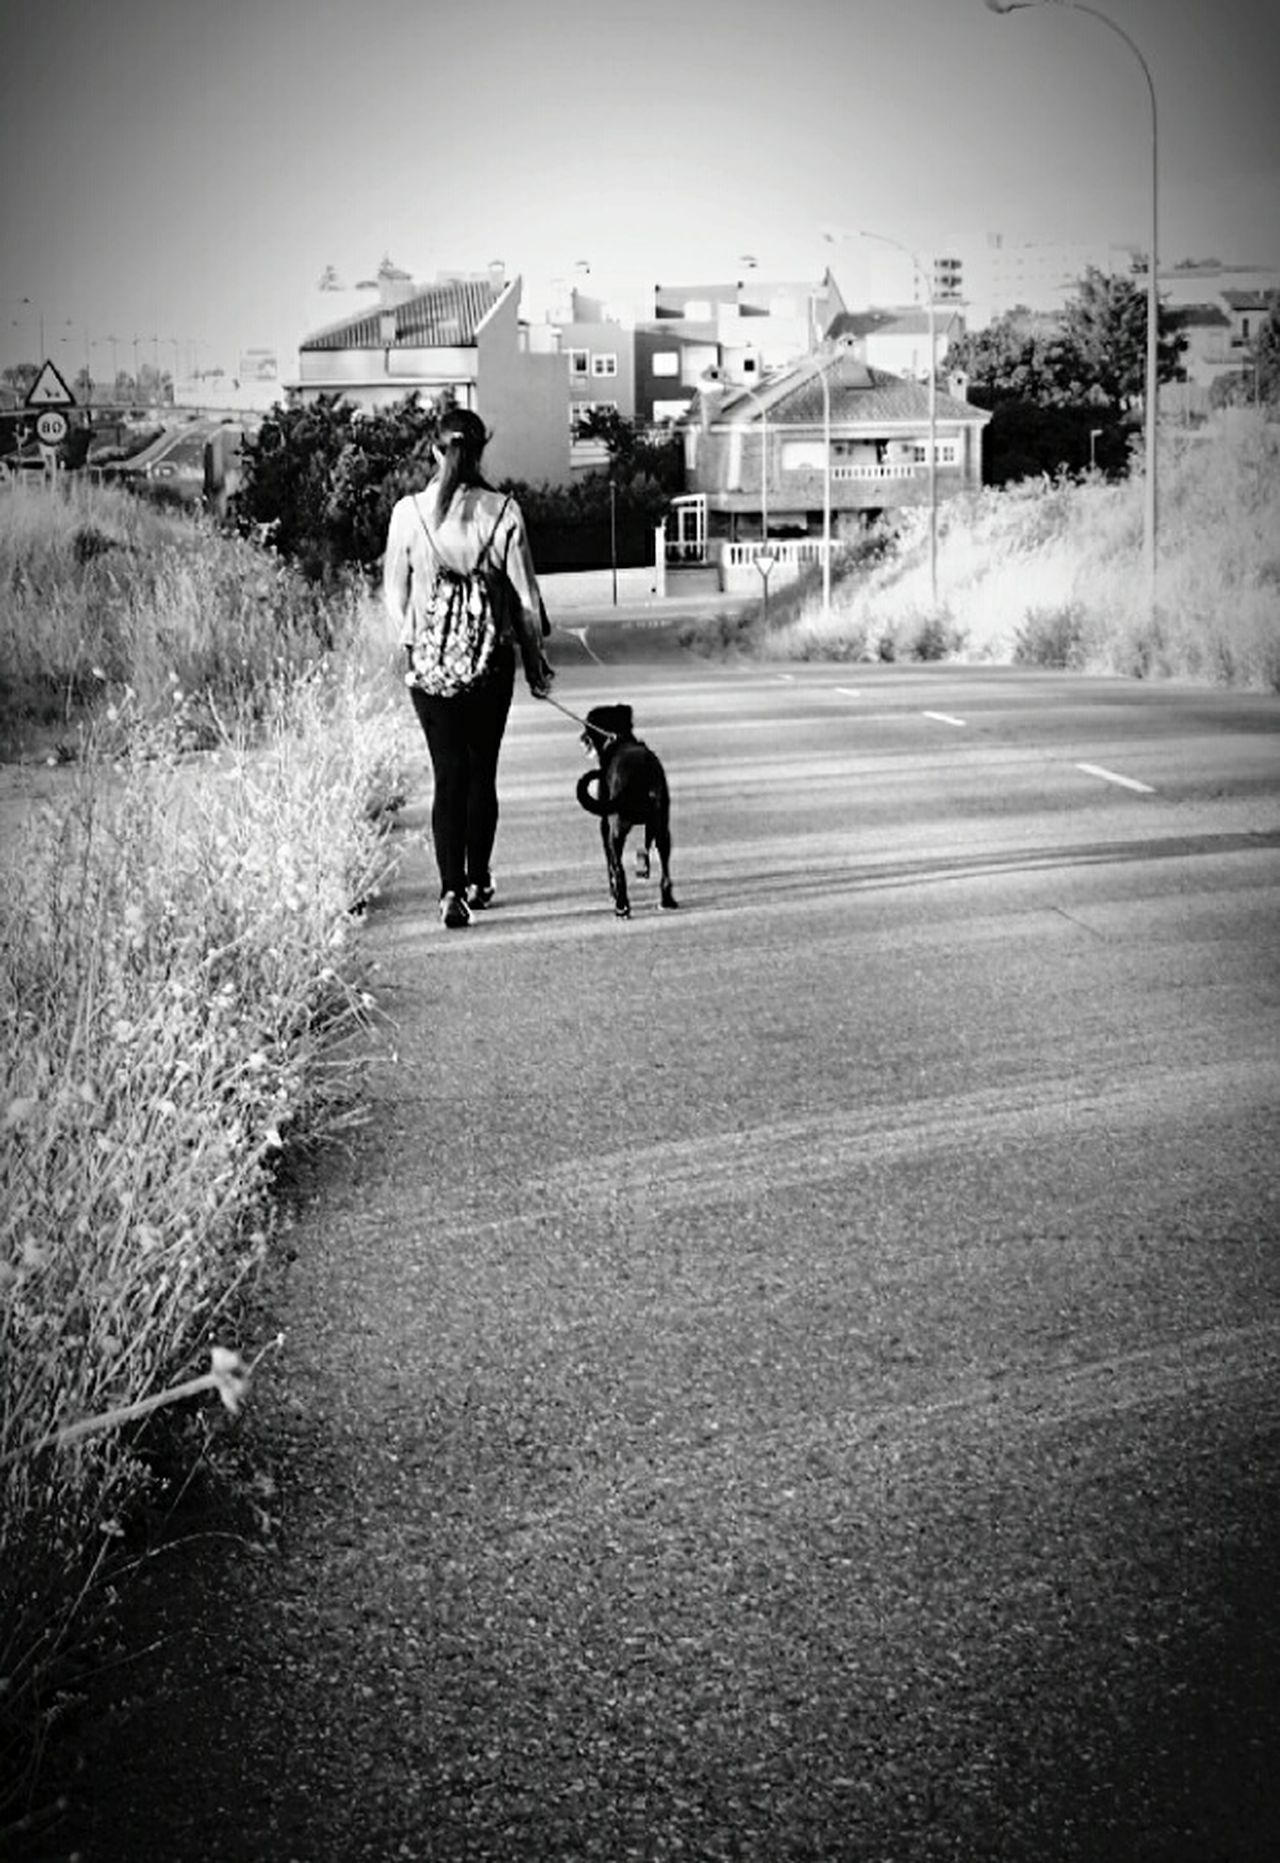 Taking Photos Photography Eye4photography  Getty Gettyimages EyeEm Nature Lover EyeEm Best Shots EyeEm Gallery Getty X EyeEm The Street Photographer - 2016 EyeEm Awards The Great Outdoors - 2016 EyeEm Awards Black And White Blackandwhitephotography Black And White Photography Blackandwhite Photography Animal_collection I Love My Dog Dogs Of EyeEm Perros Por El Mundo Dog❤ Dog Live Blackandwhite Dogs Animal Photography Perros